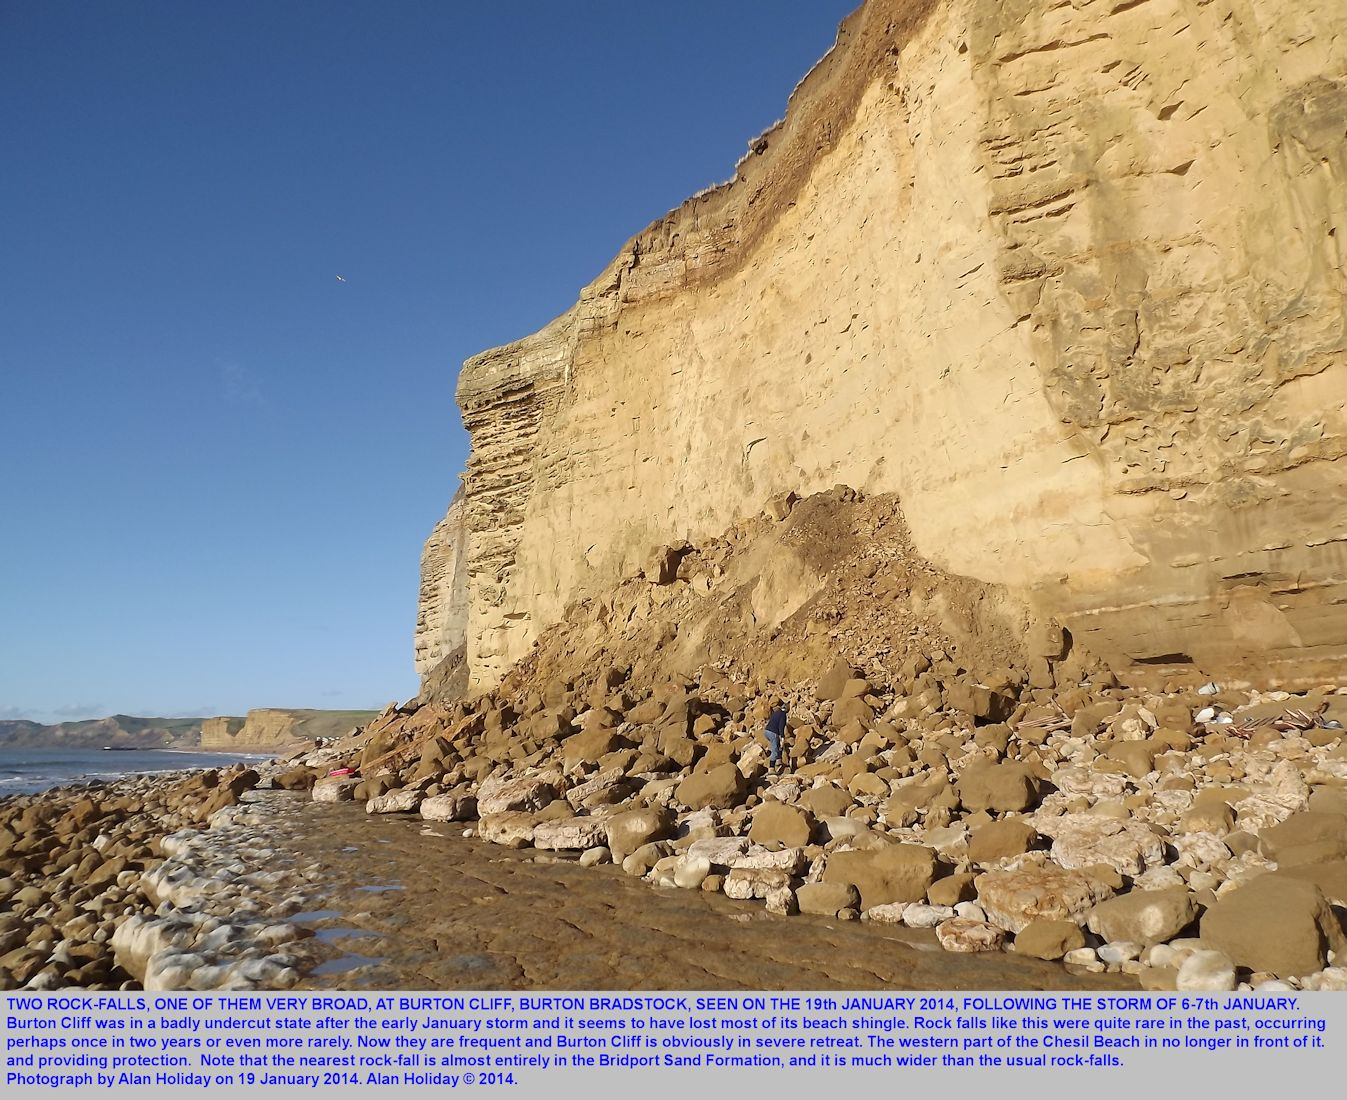 Two rock falls, one of them very broad at Burton Cliff, Burton Bradstock, Dorset, as photographed by Alan Holiday on 19th January 2014